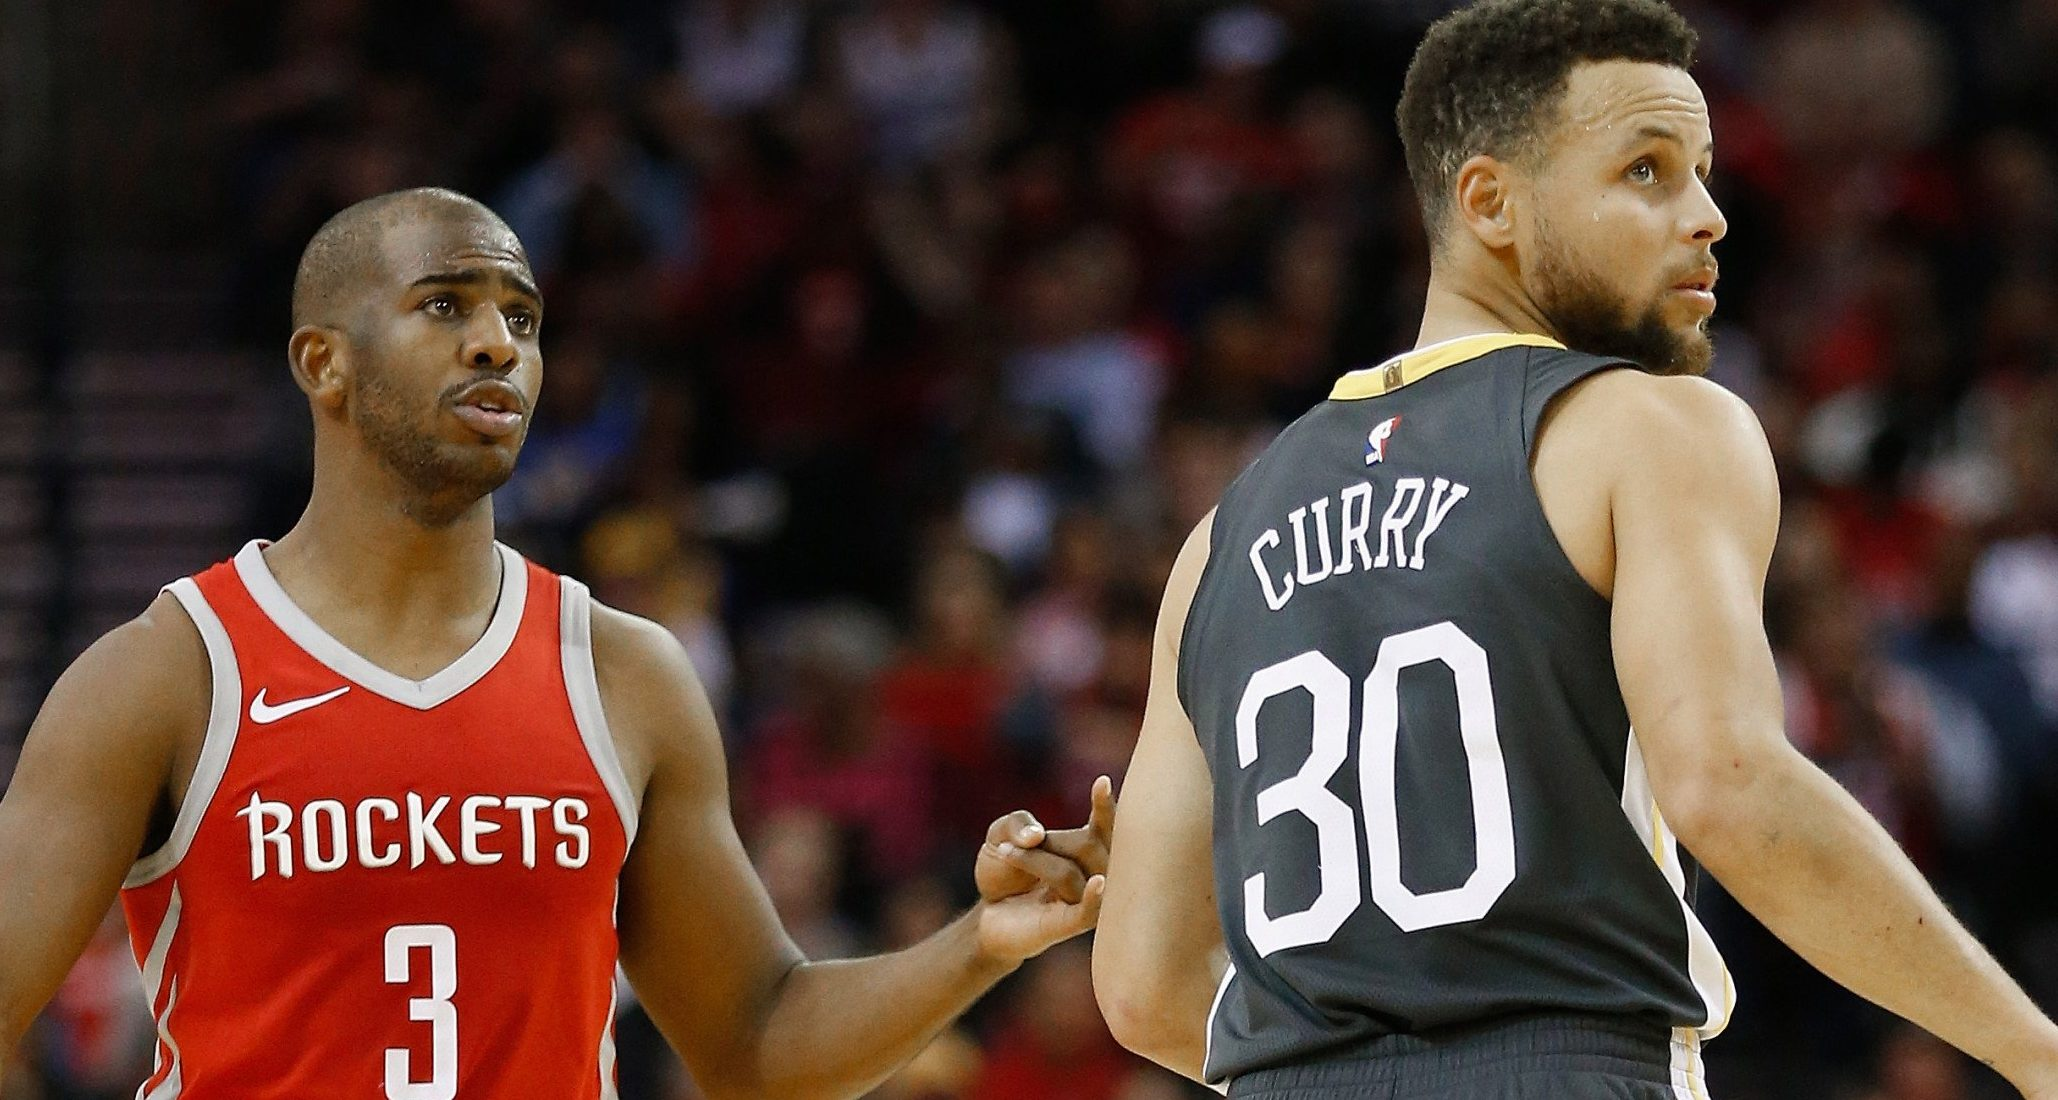 Chris Paul-Steph Curry-Houston Rockets-Golden State Warriors-NBA Playoffs-Western Conference semifinals-NBA futures-NBA series prices-Warriors favored vs. Rockets-